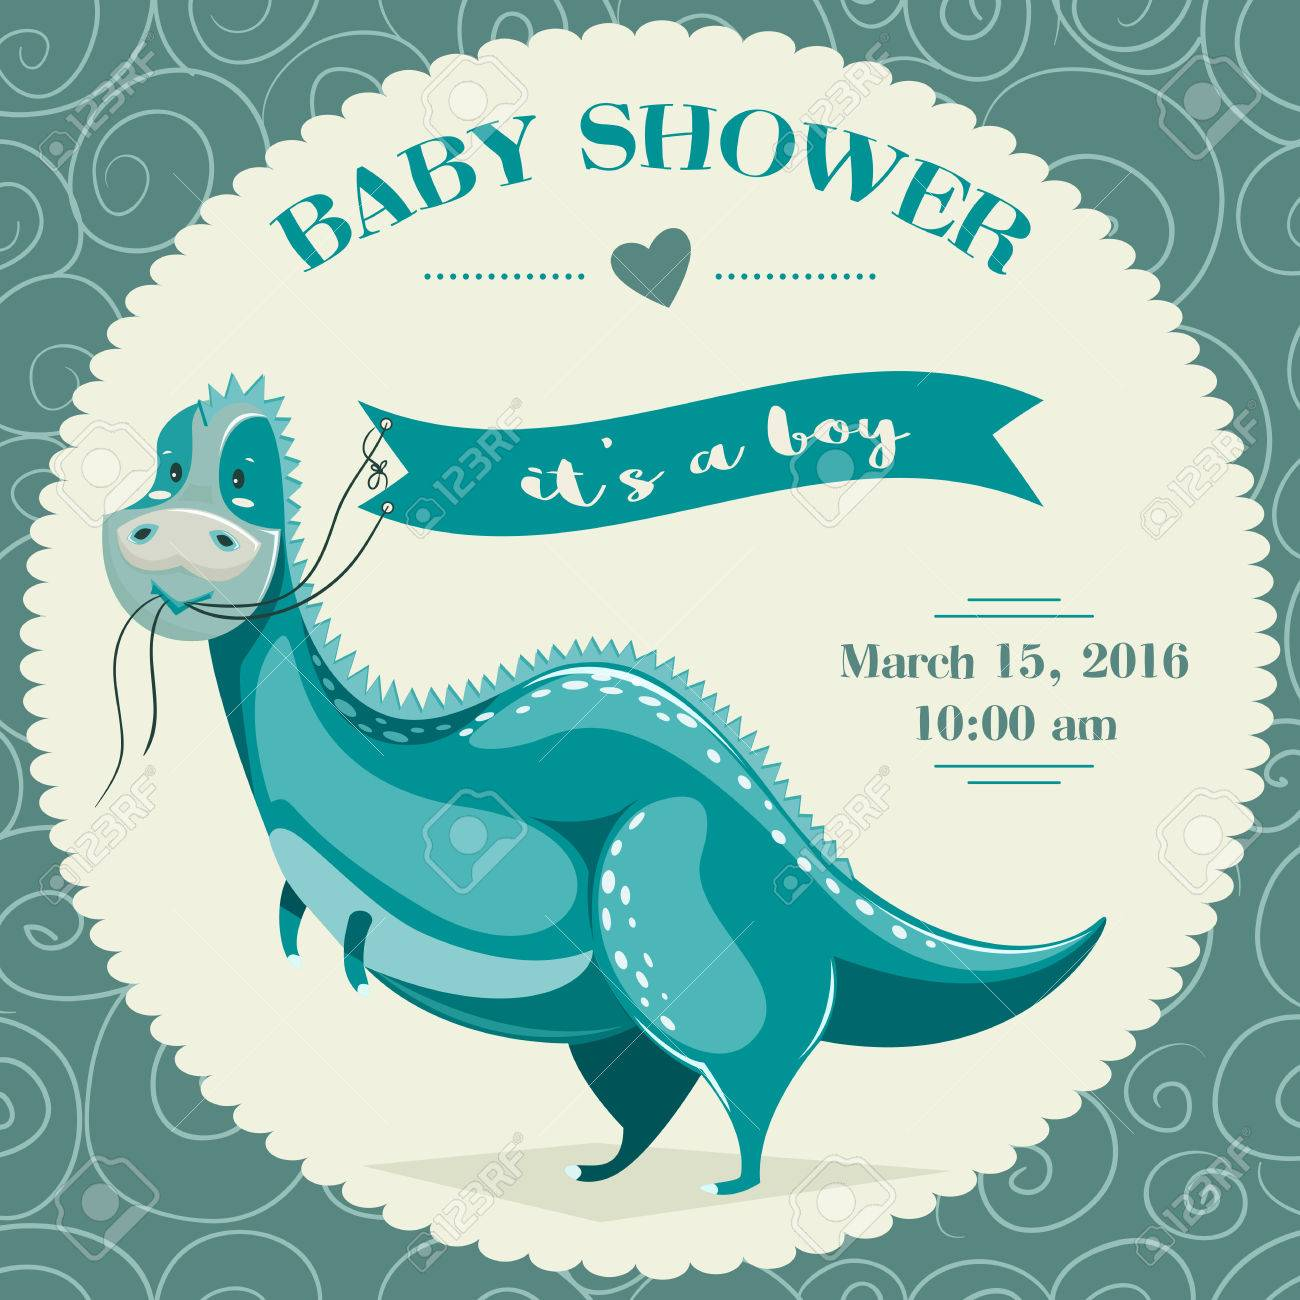 Baby Shower Invitation Template With Cartoon Dinosaur Vector